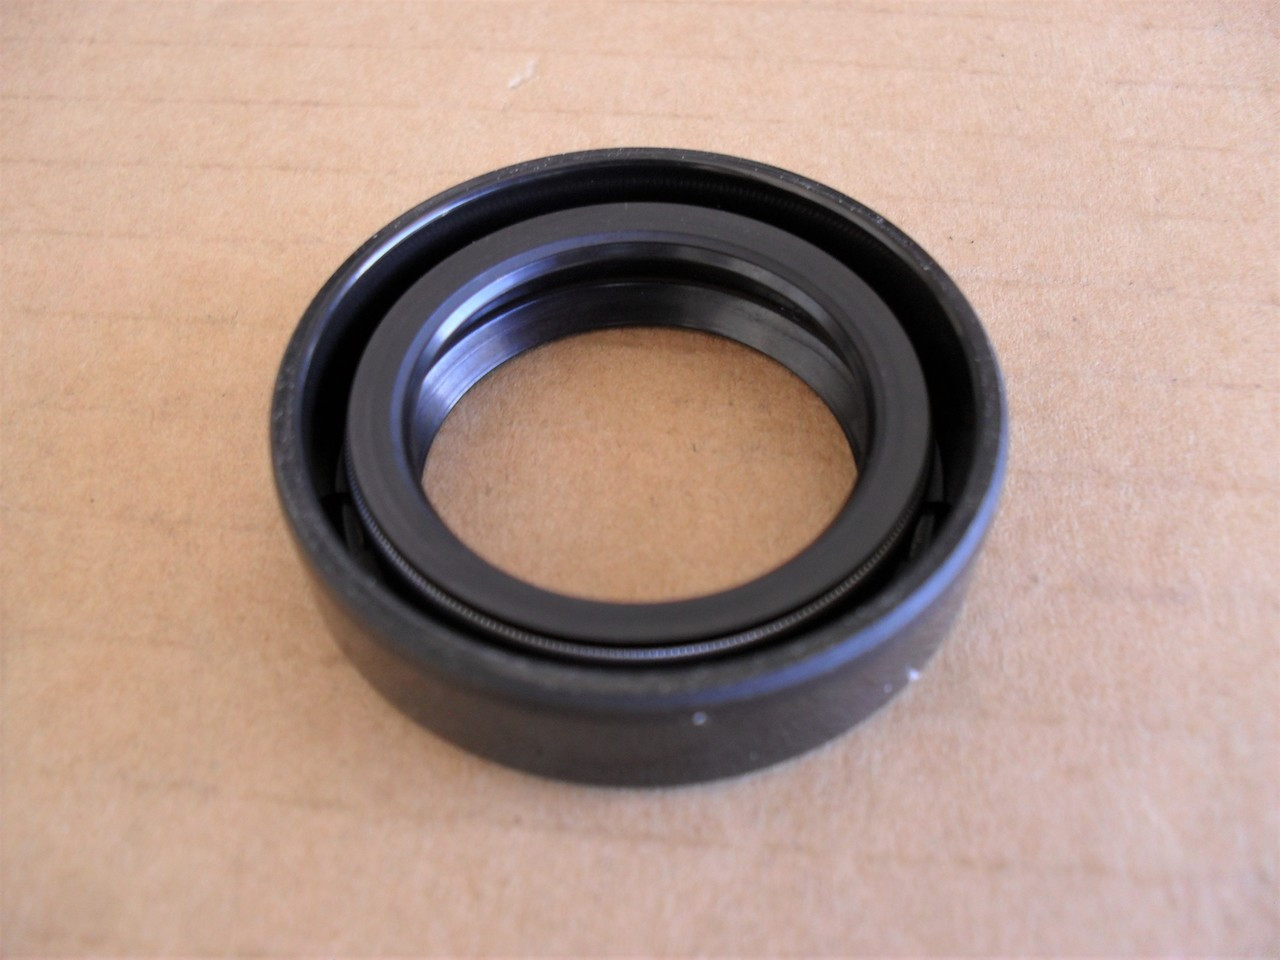 """Drive Axle Oil Seal for Troy Bilt Horse, Pony, Proline Roto Tiller 119, 921-04031, 9621, ID:1"""" OD:1-1/2"""" Height:3/8"""""""